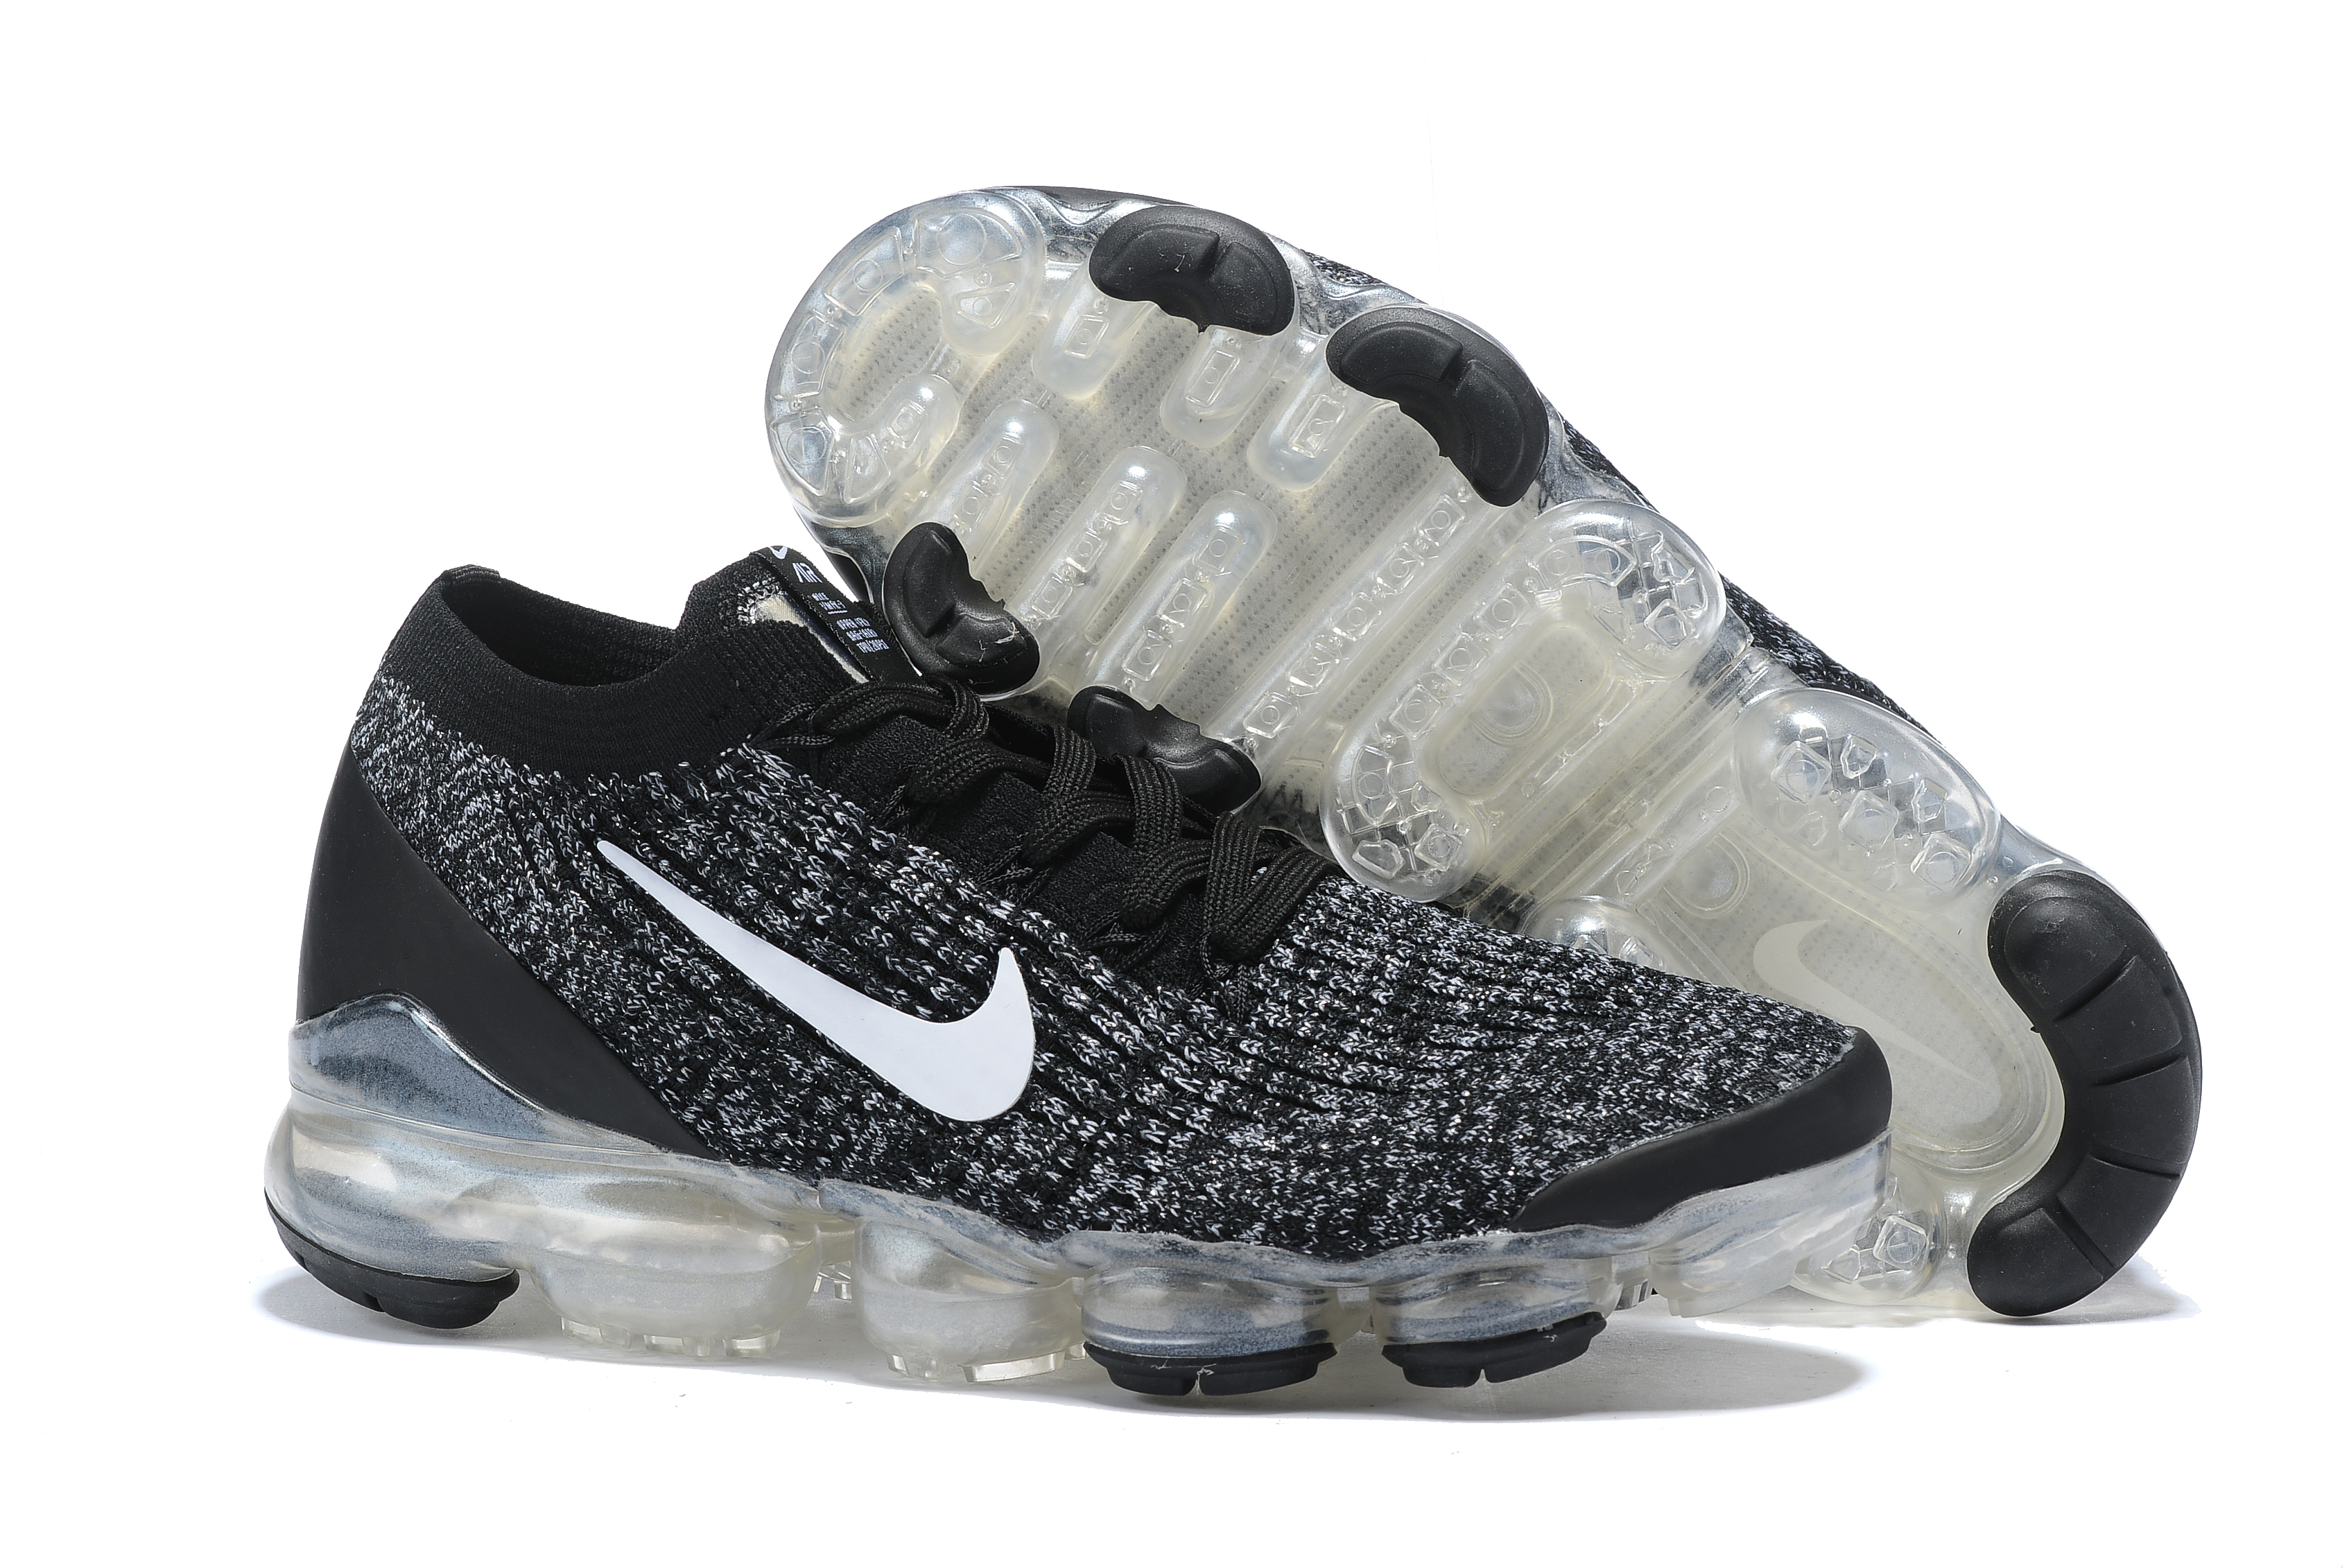 2019 Nike Air VaporMax Flyknit 3.0 Black Grey Lover Shoes